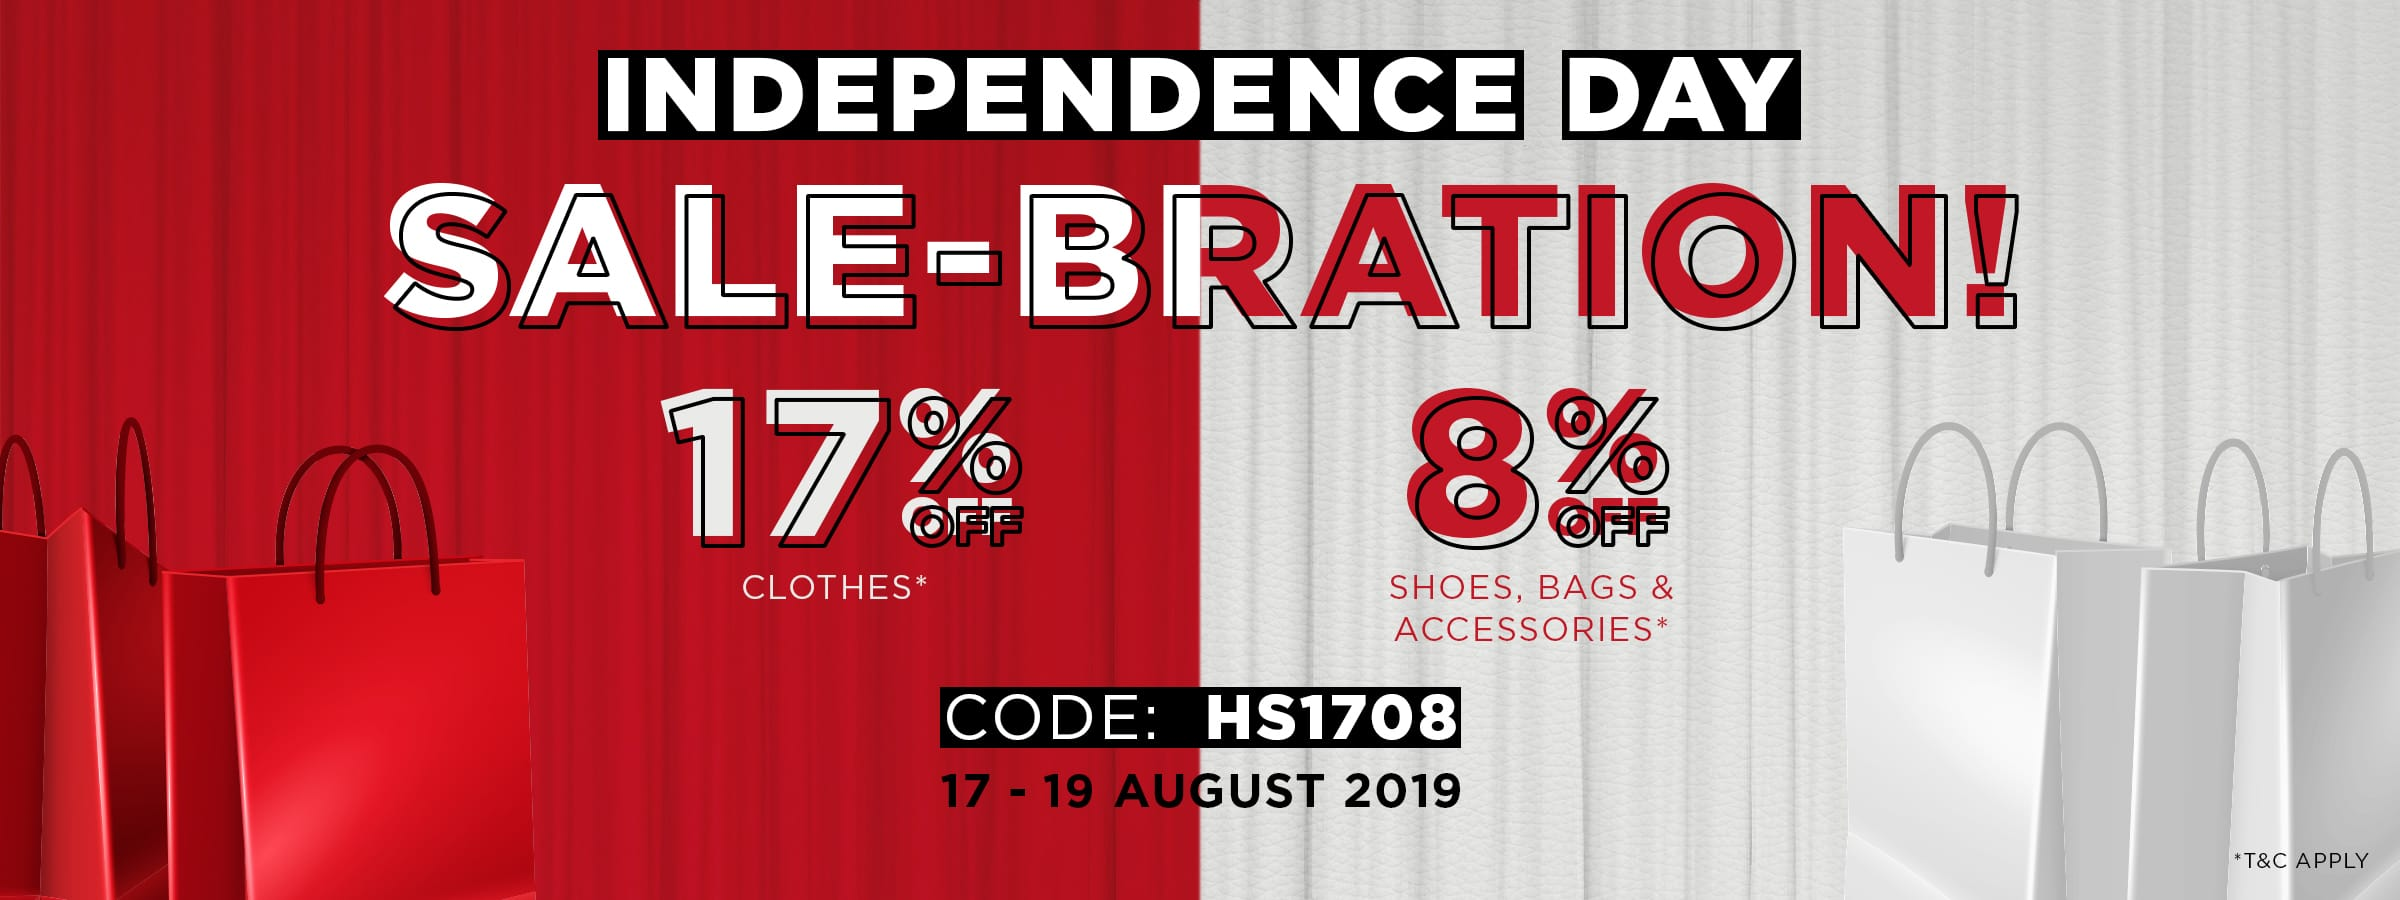 Independence Day SALE-BRATION